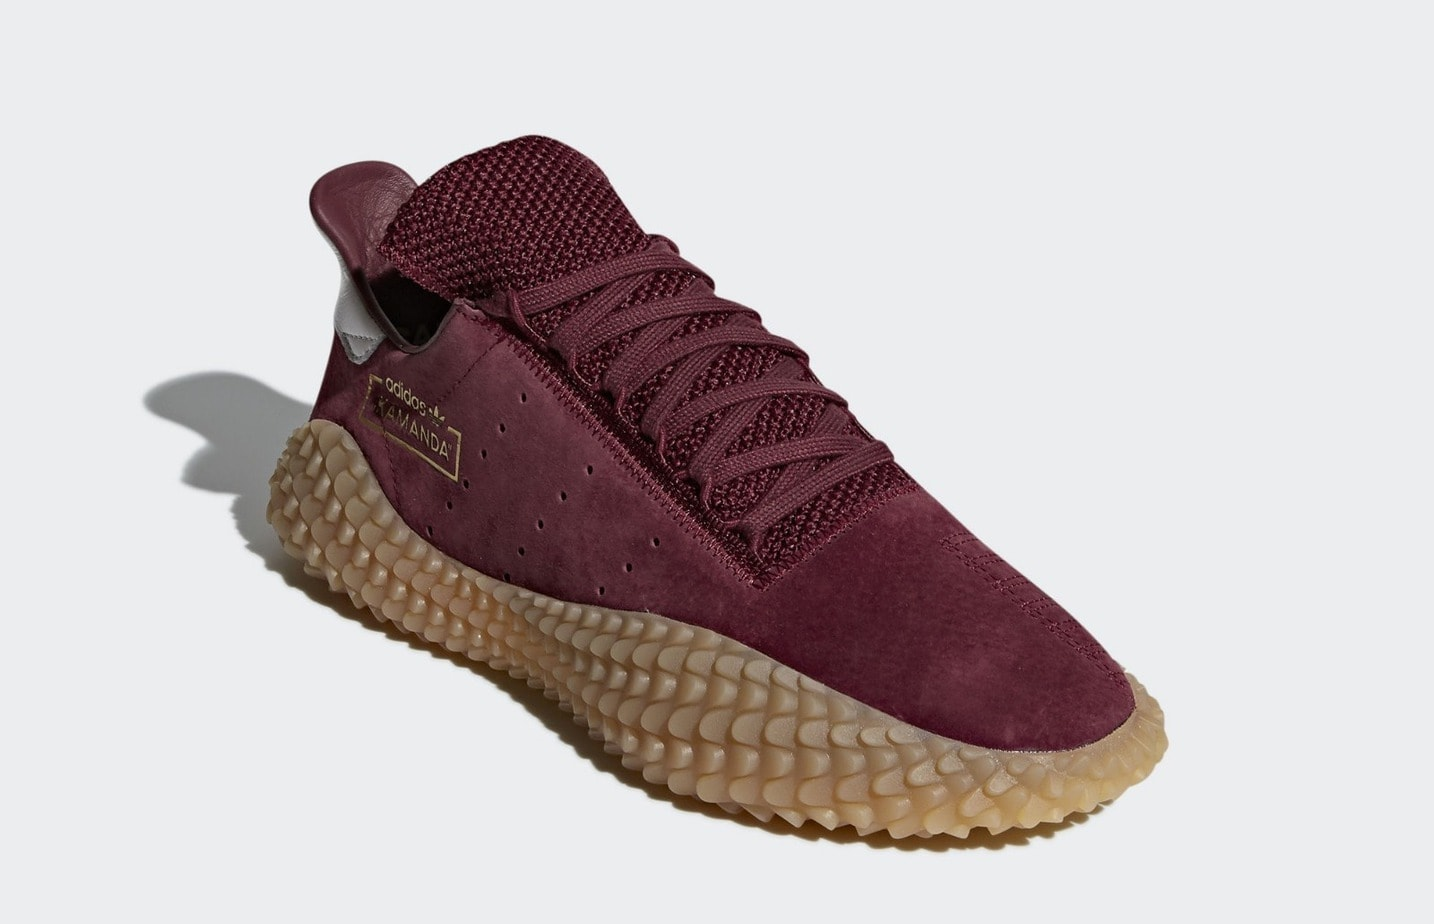 """42d8e30c408c The adidas Kamanda First Official Images Reveal a New """"Burgundy"""" Colorway"""